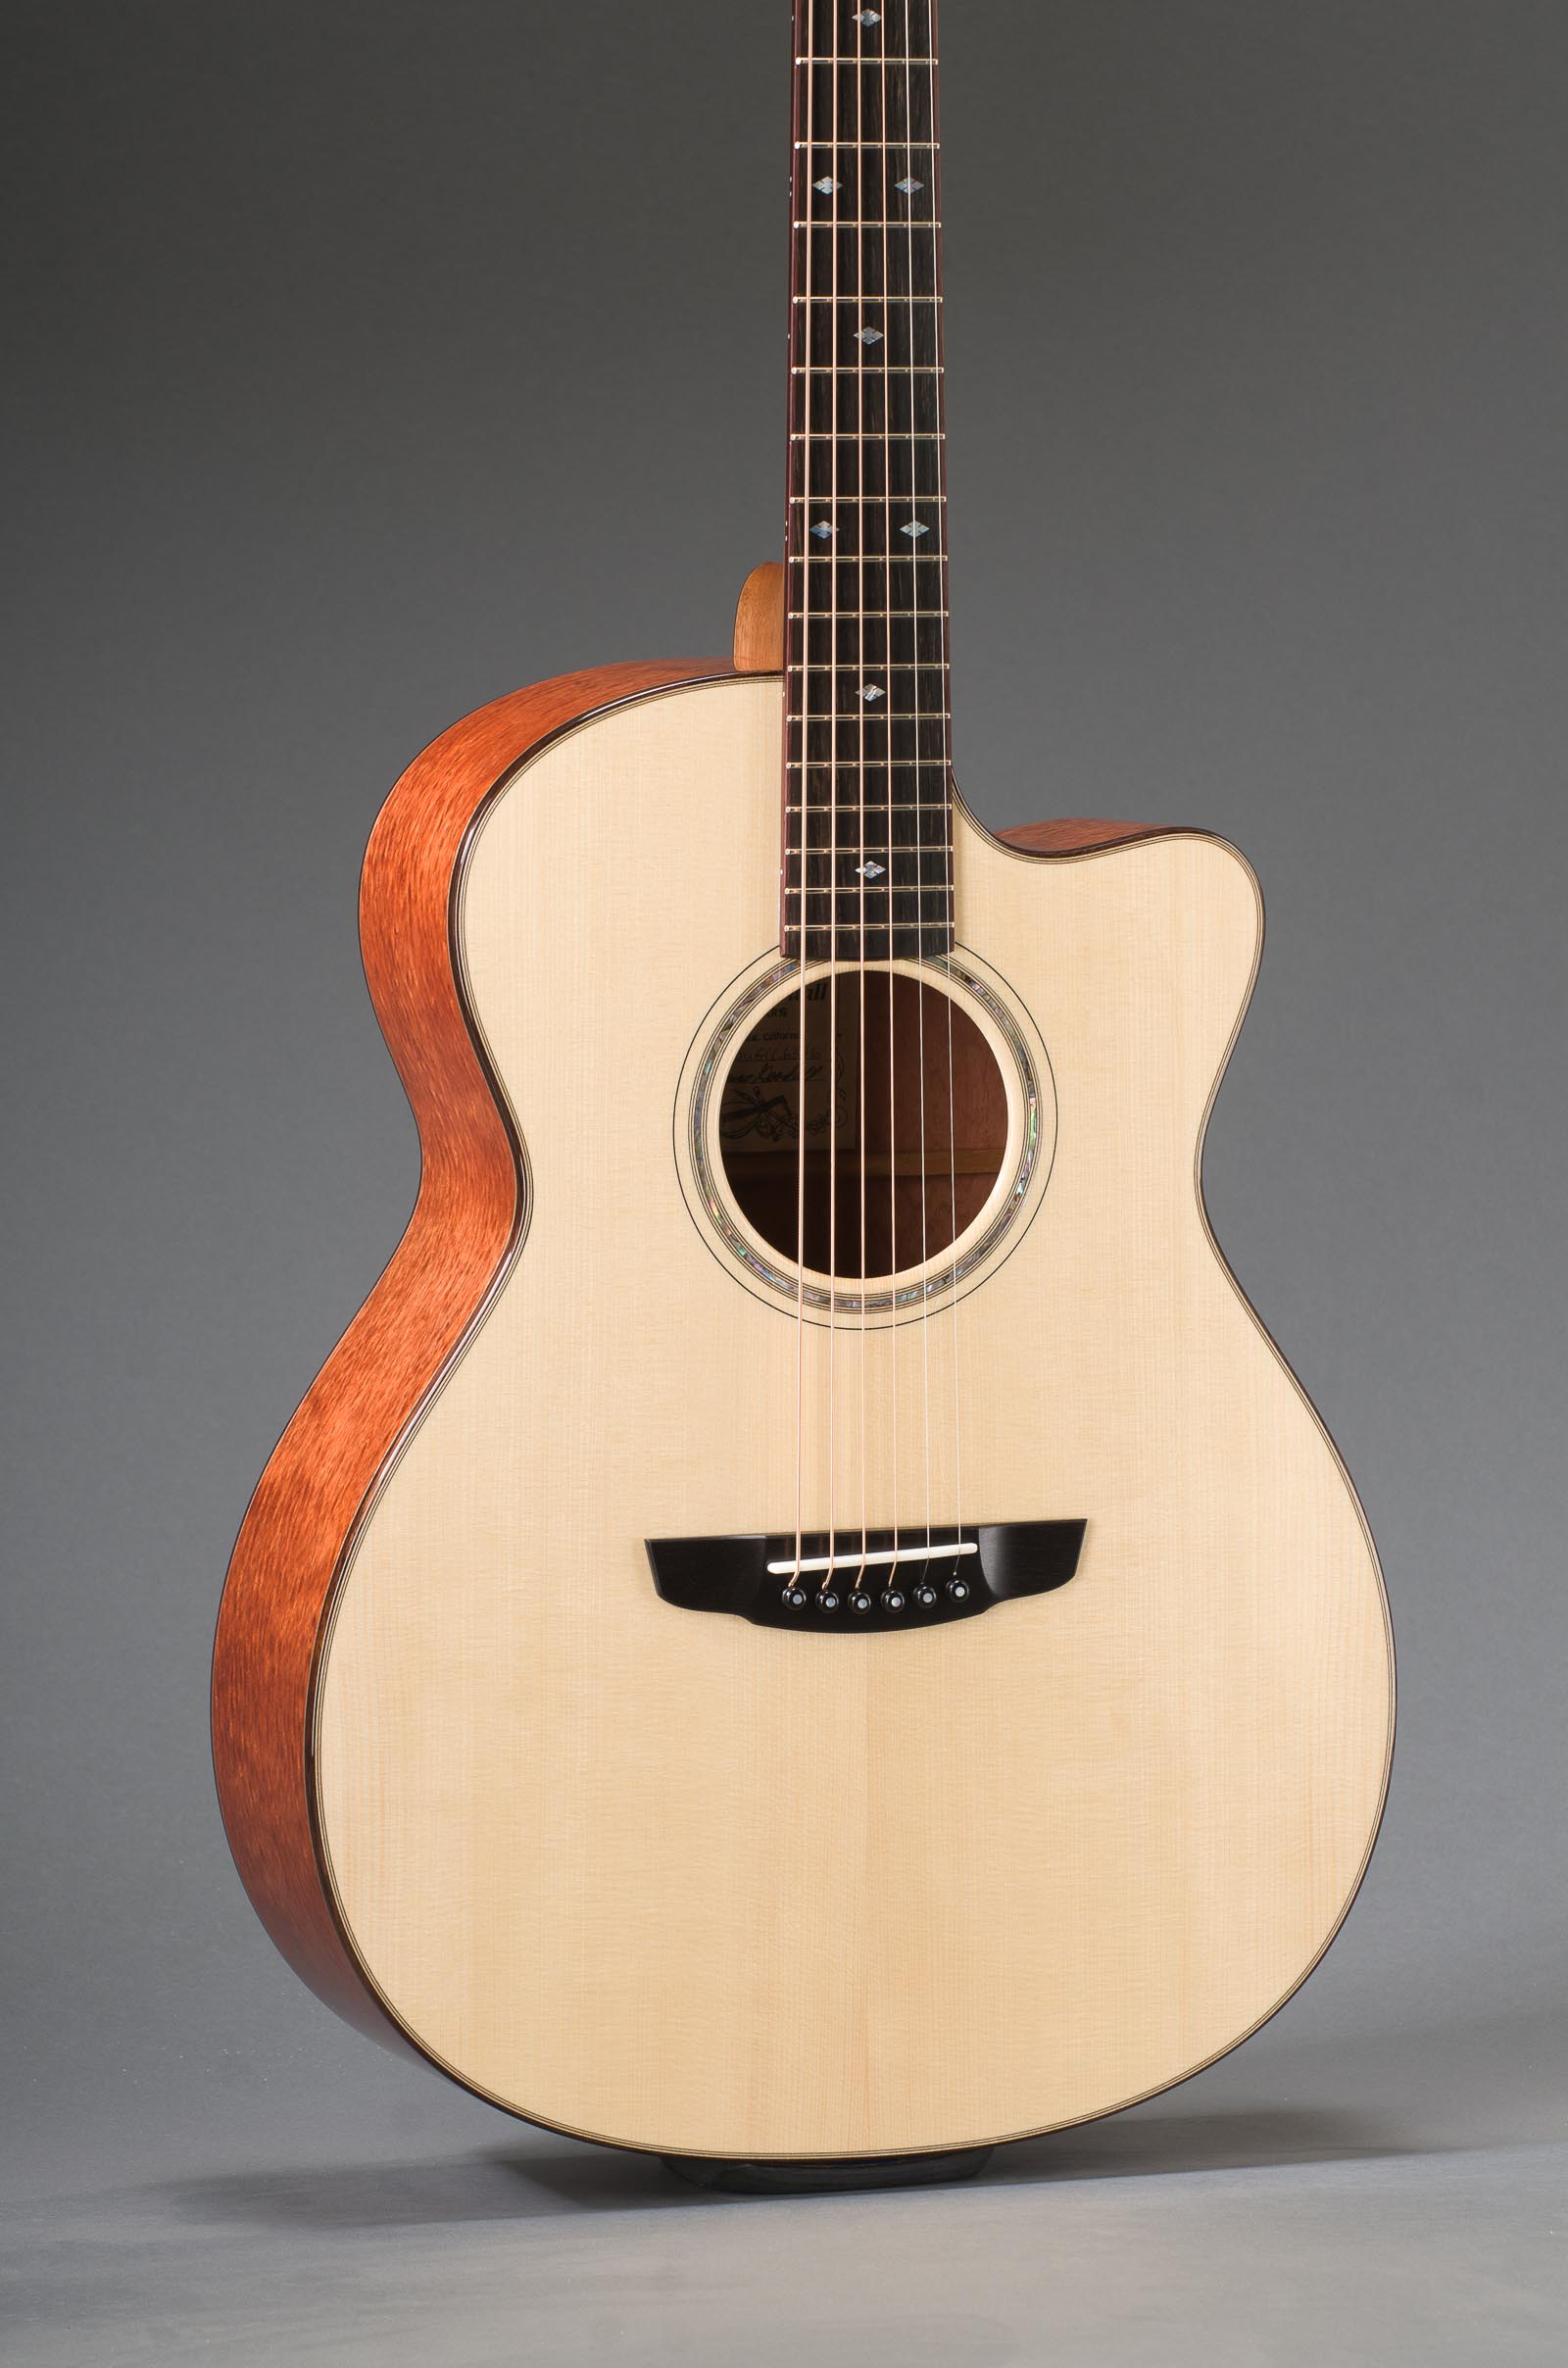 Bubinga Rosewood Grand Concert With Adirondack Spruce Top, Rosewood Binding And Venetian Cutaway